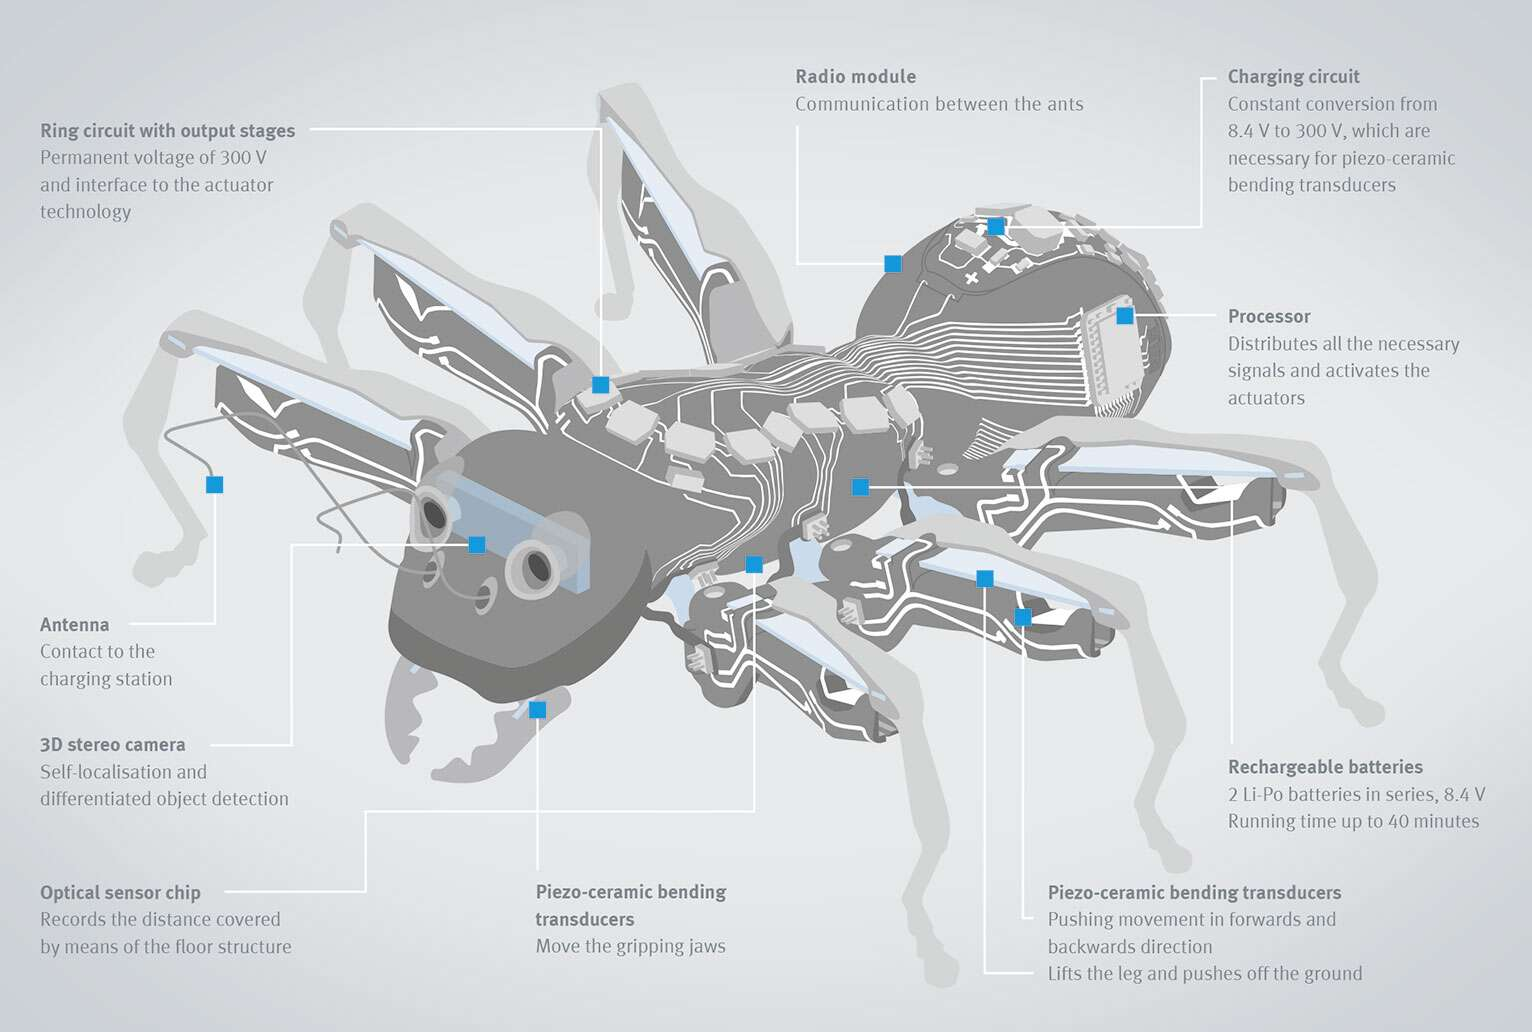 Well-conceived concept: Numerous components, technologies and functions are combined in each ant in the smallest of spaces